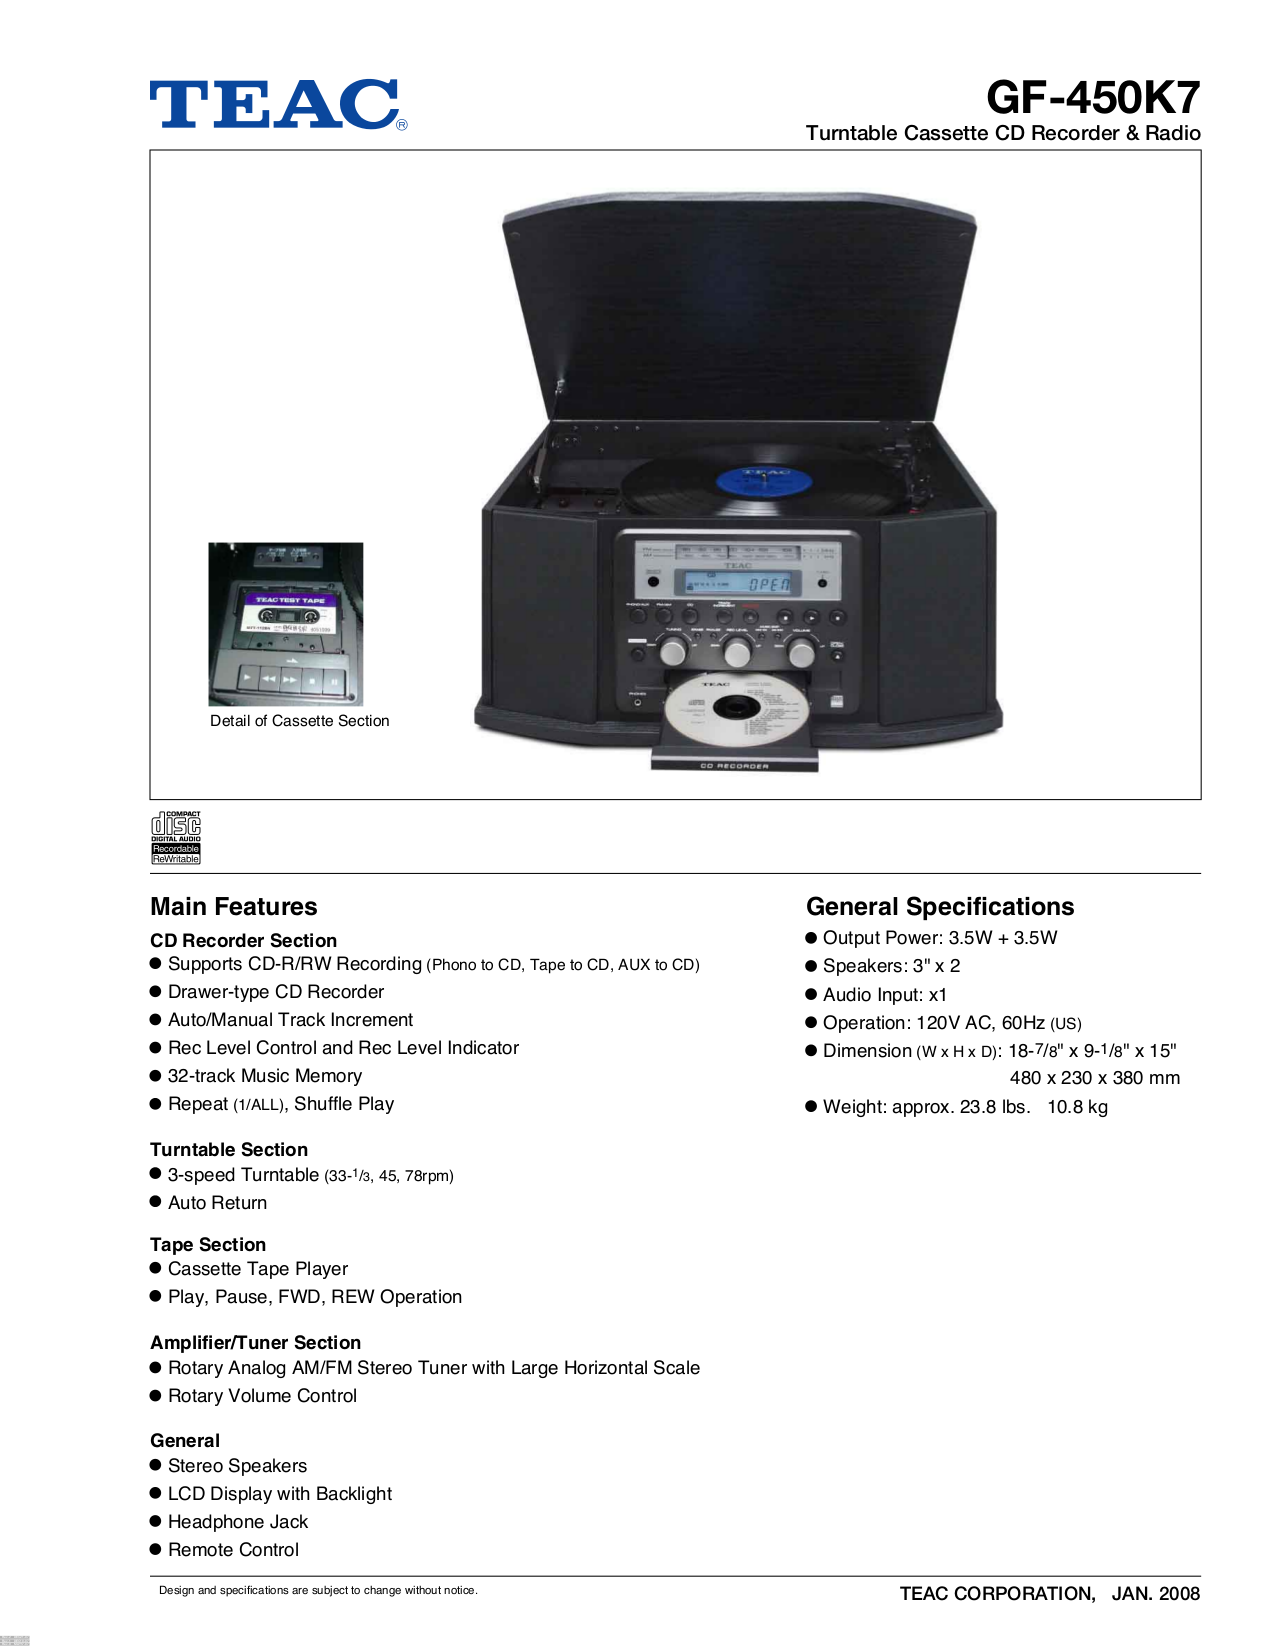 pdf for Teac Other GF-450K7 CD Recorders manual